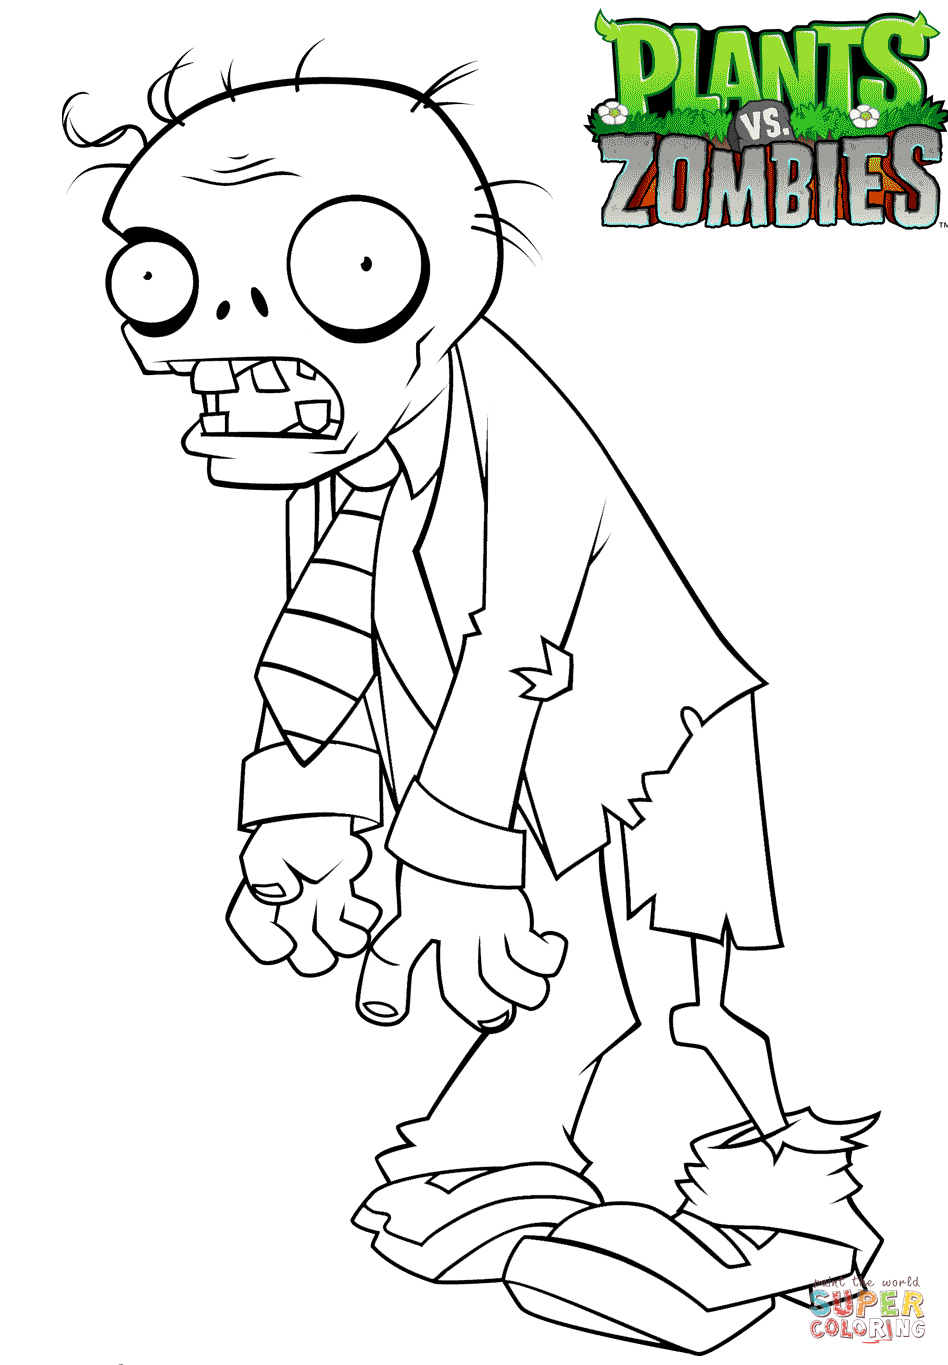 plants vs zombies coloring page free printable coloring pages